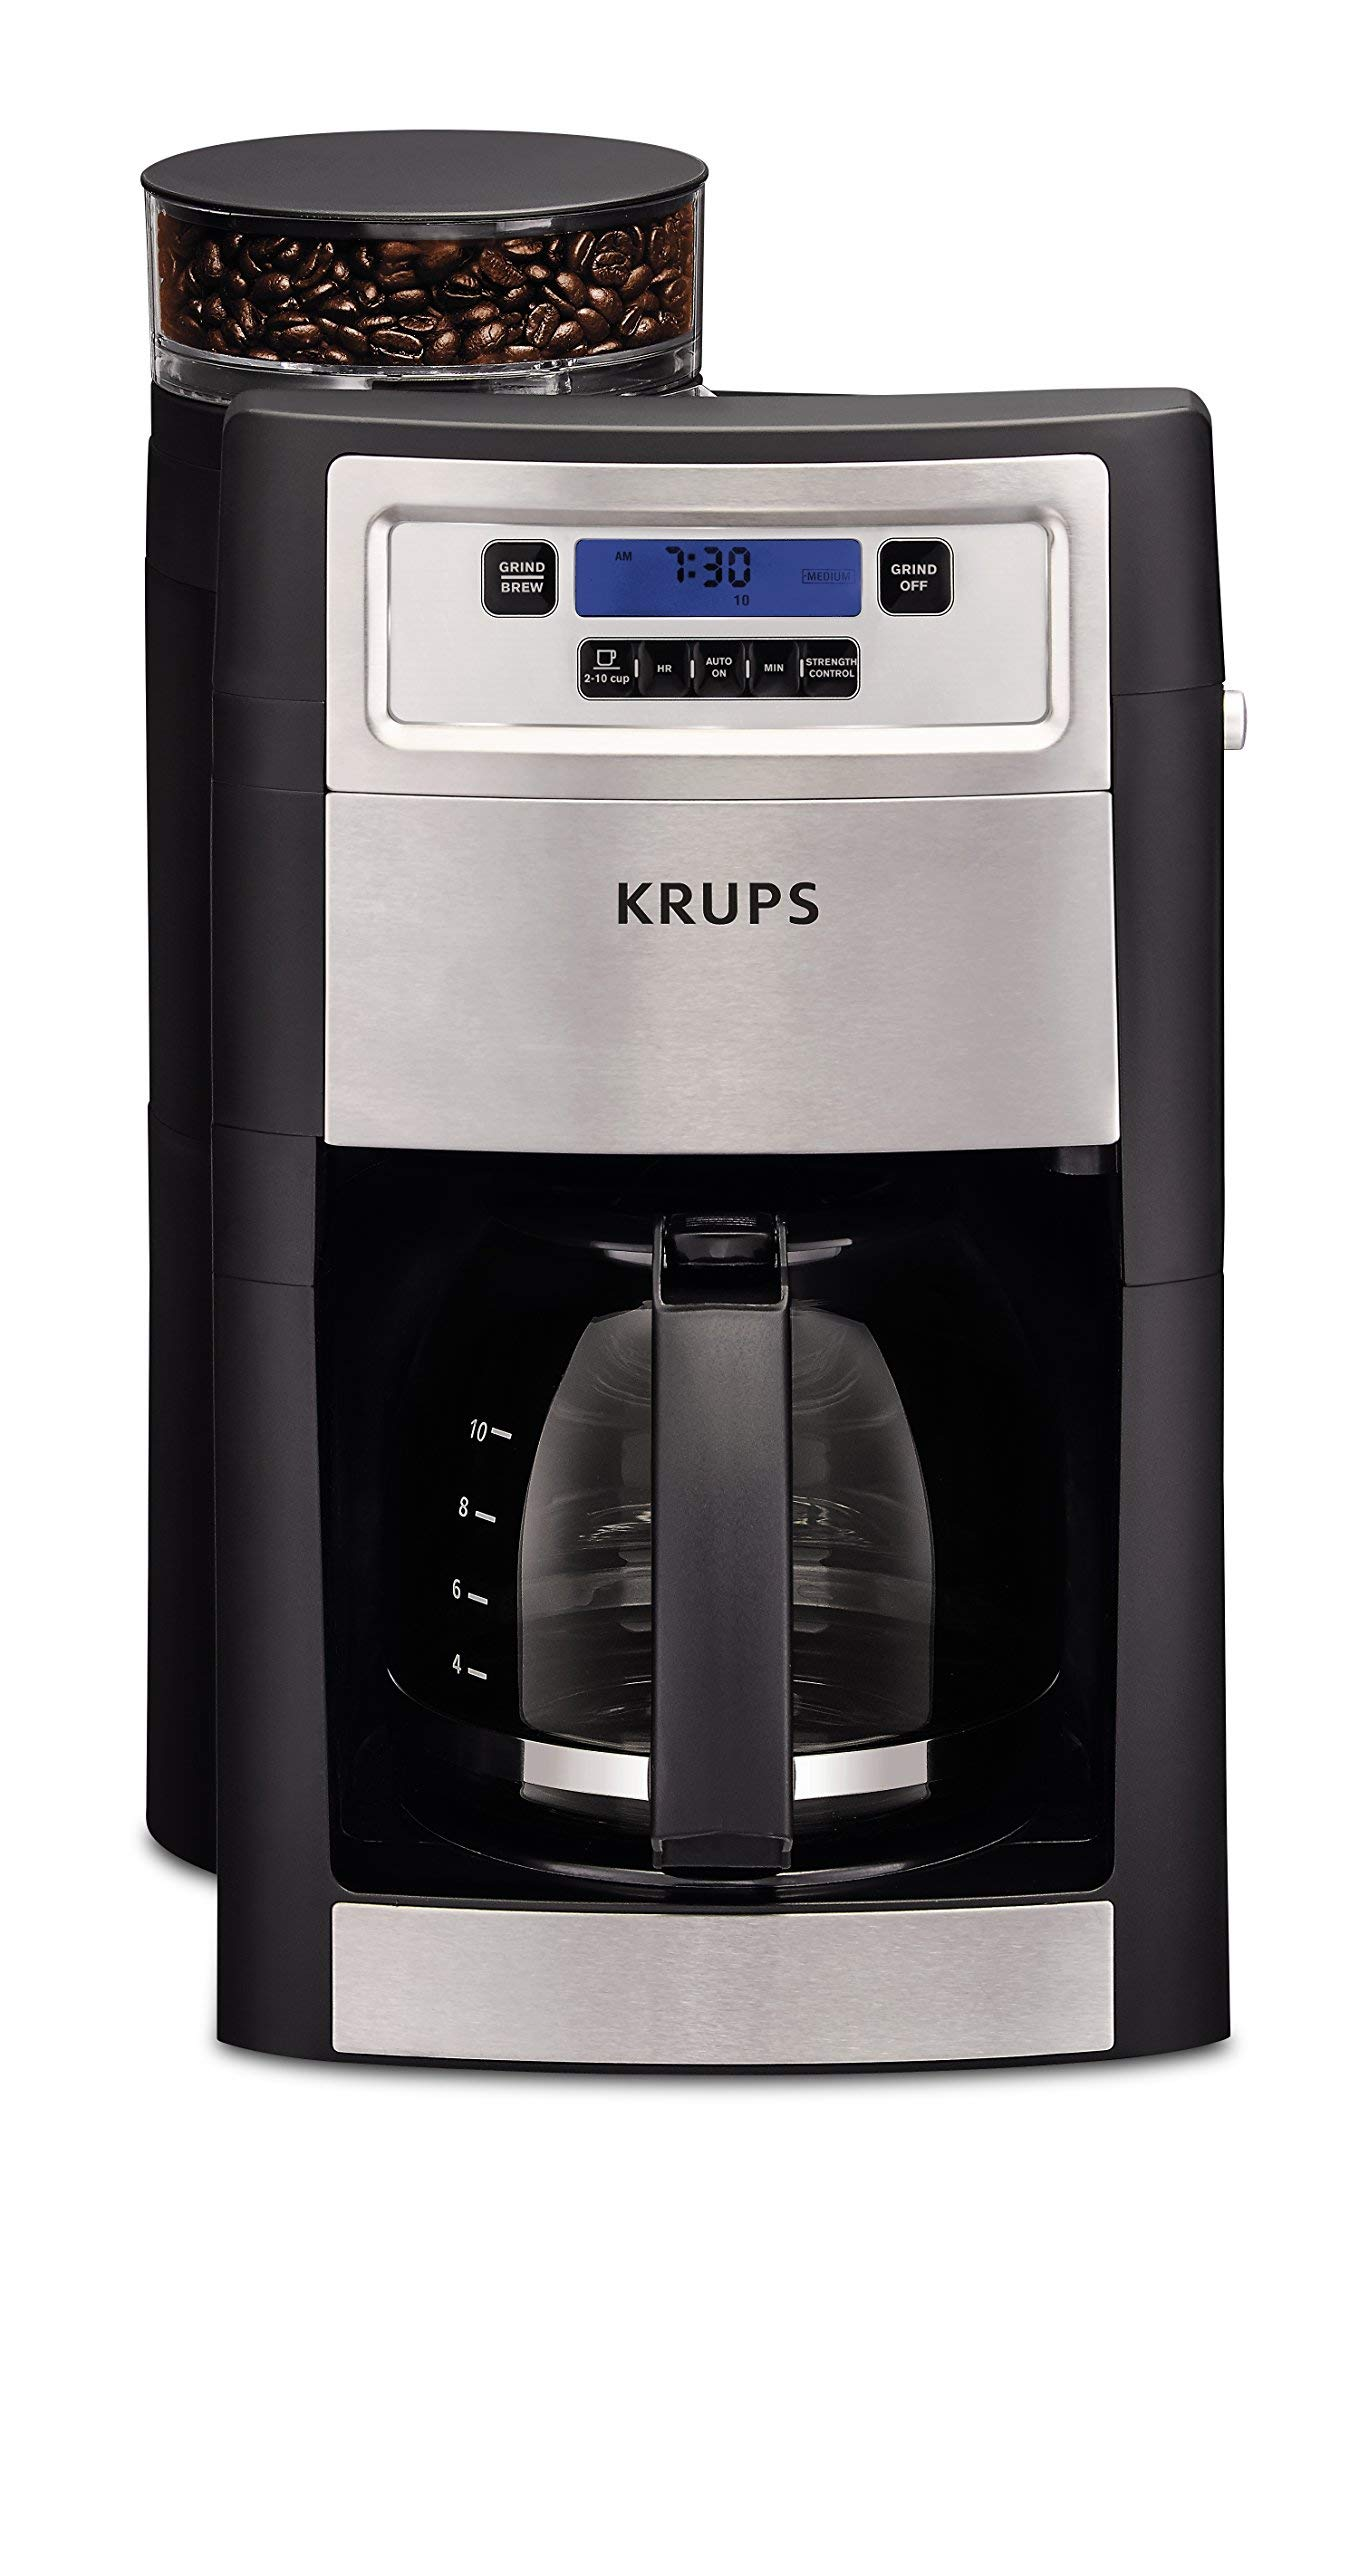 KRUPS Grind and Brew Auto-start Coffee Maker with Builtin Burr Coffee Grinder, 10 Cups, Black (Renewed) by KRUPS